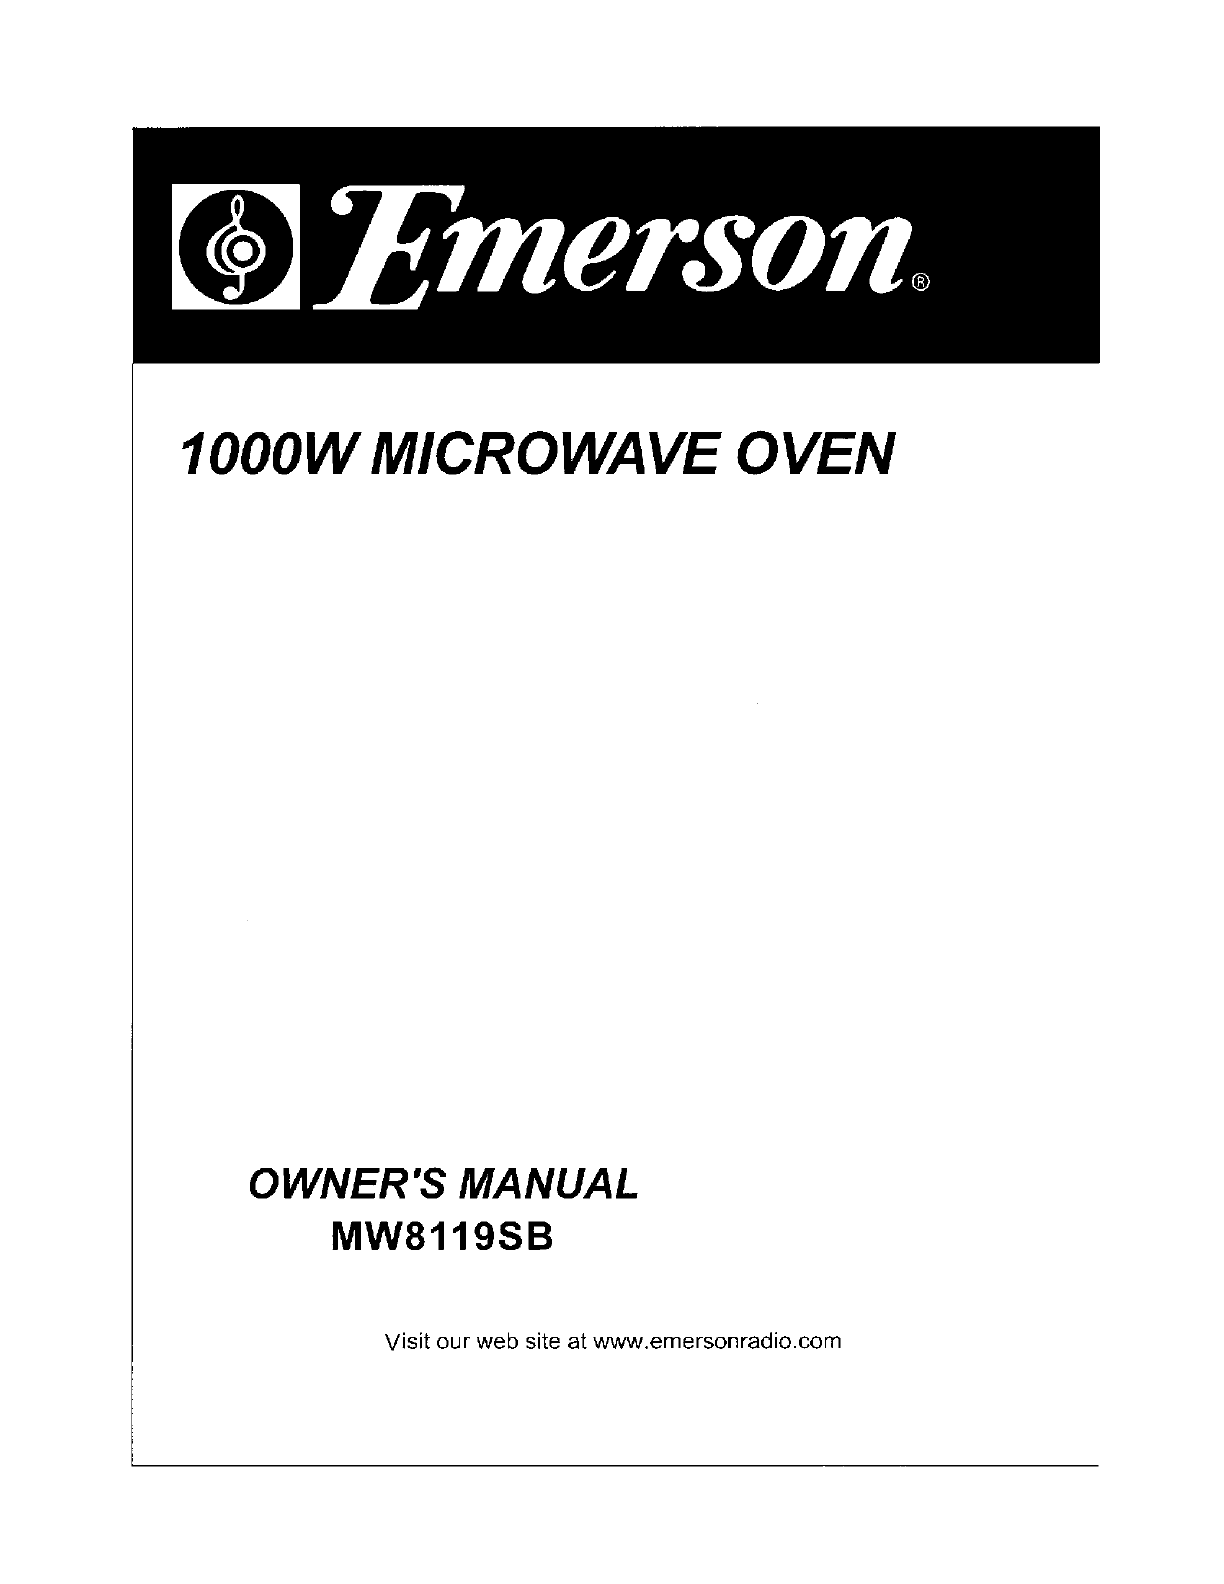 Obsolete Oven Parts Emerson Microwave Mw8119sb Microwave Baked Potato